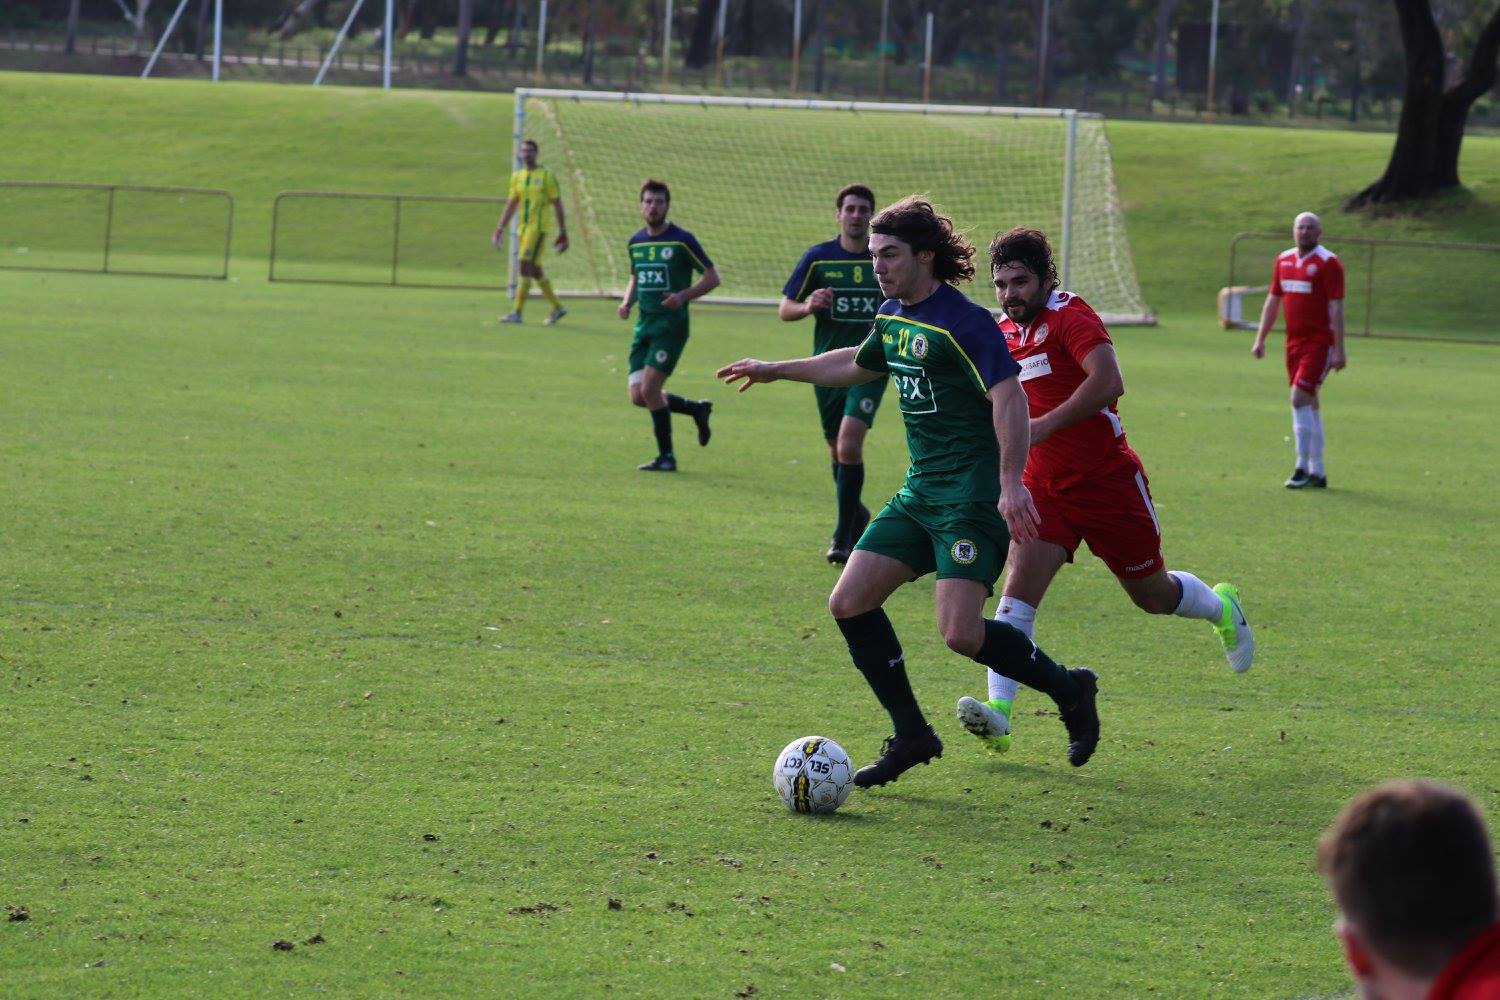 MAX WELTON SKIPS AWAY FROM A DEFENDER IN THE 5-1 WIN - CREDIT: GABRIELE MALUGA